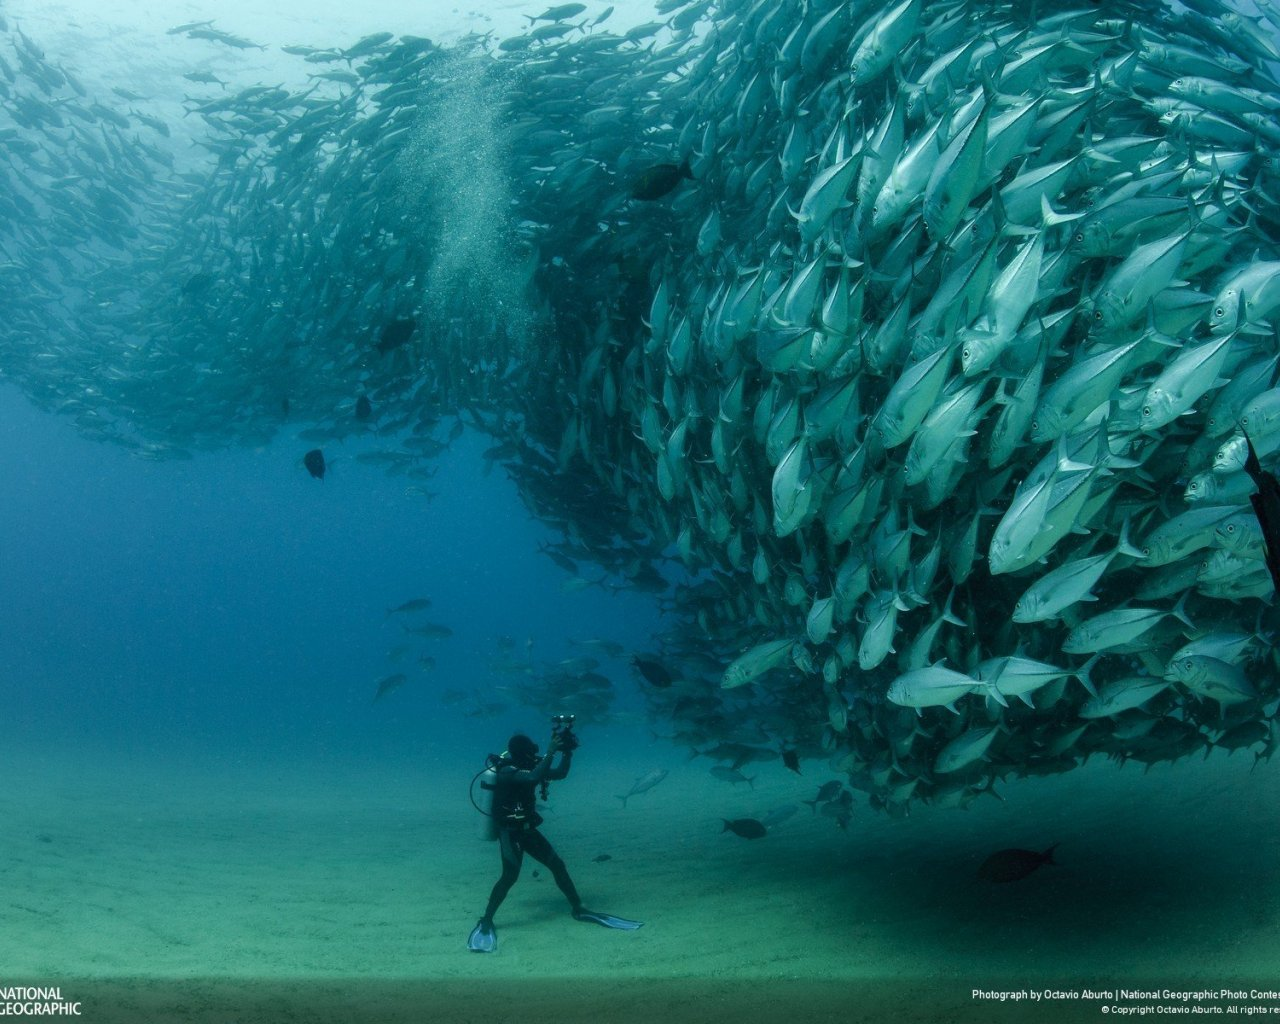 a-school-of-fish-fishes-animals-national-geographic-diver-photograph-1280x1024